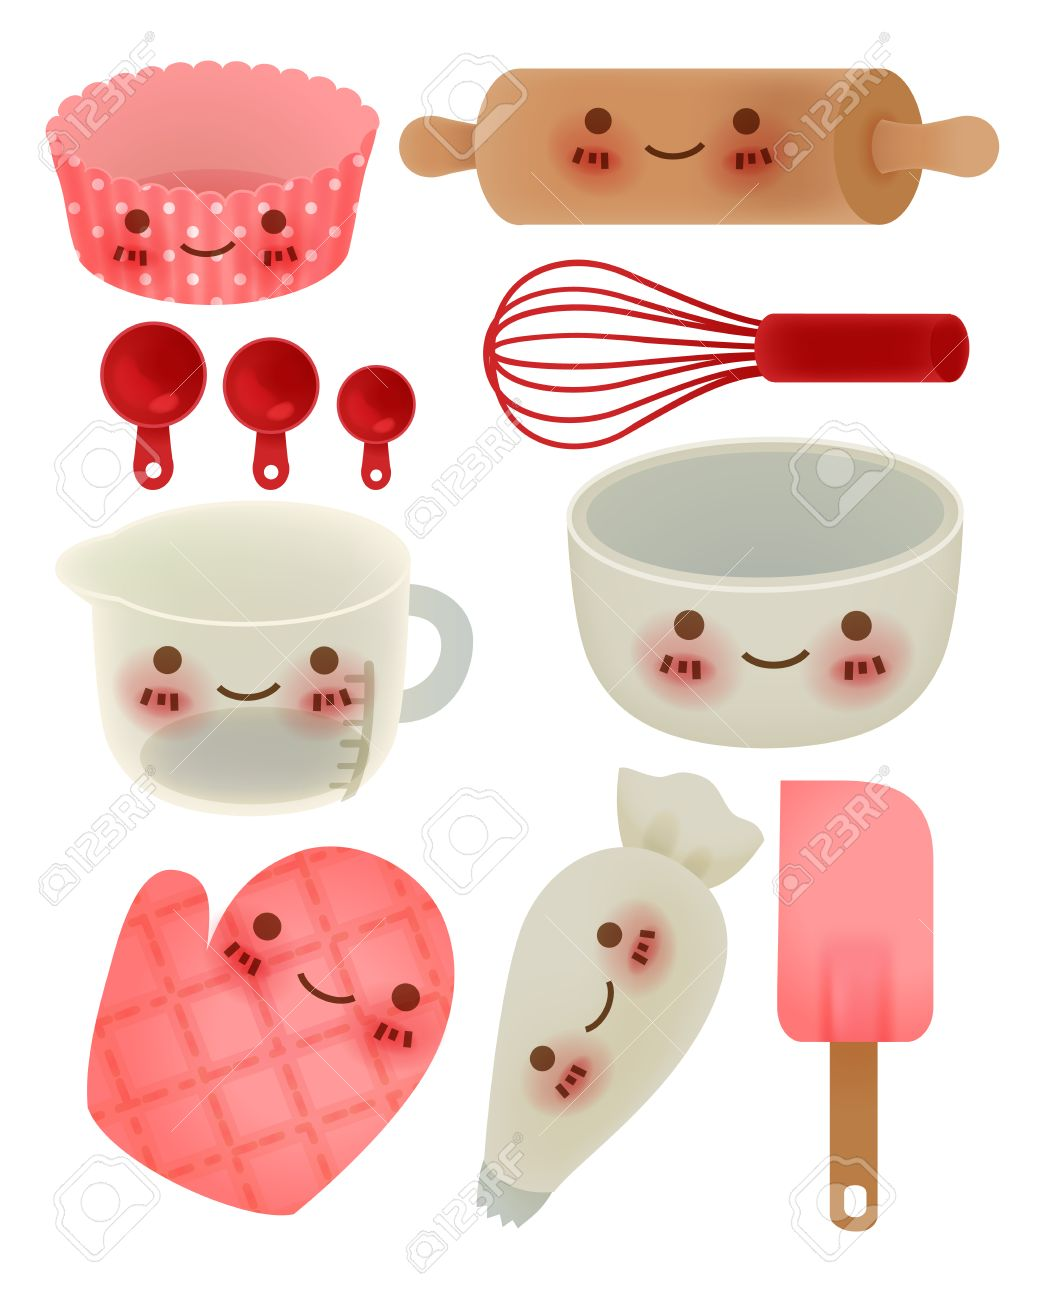 Cute Kitchen Cute Kitchen Utensil Royalty Free Cliparts Vectors And Stock